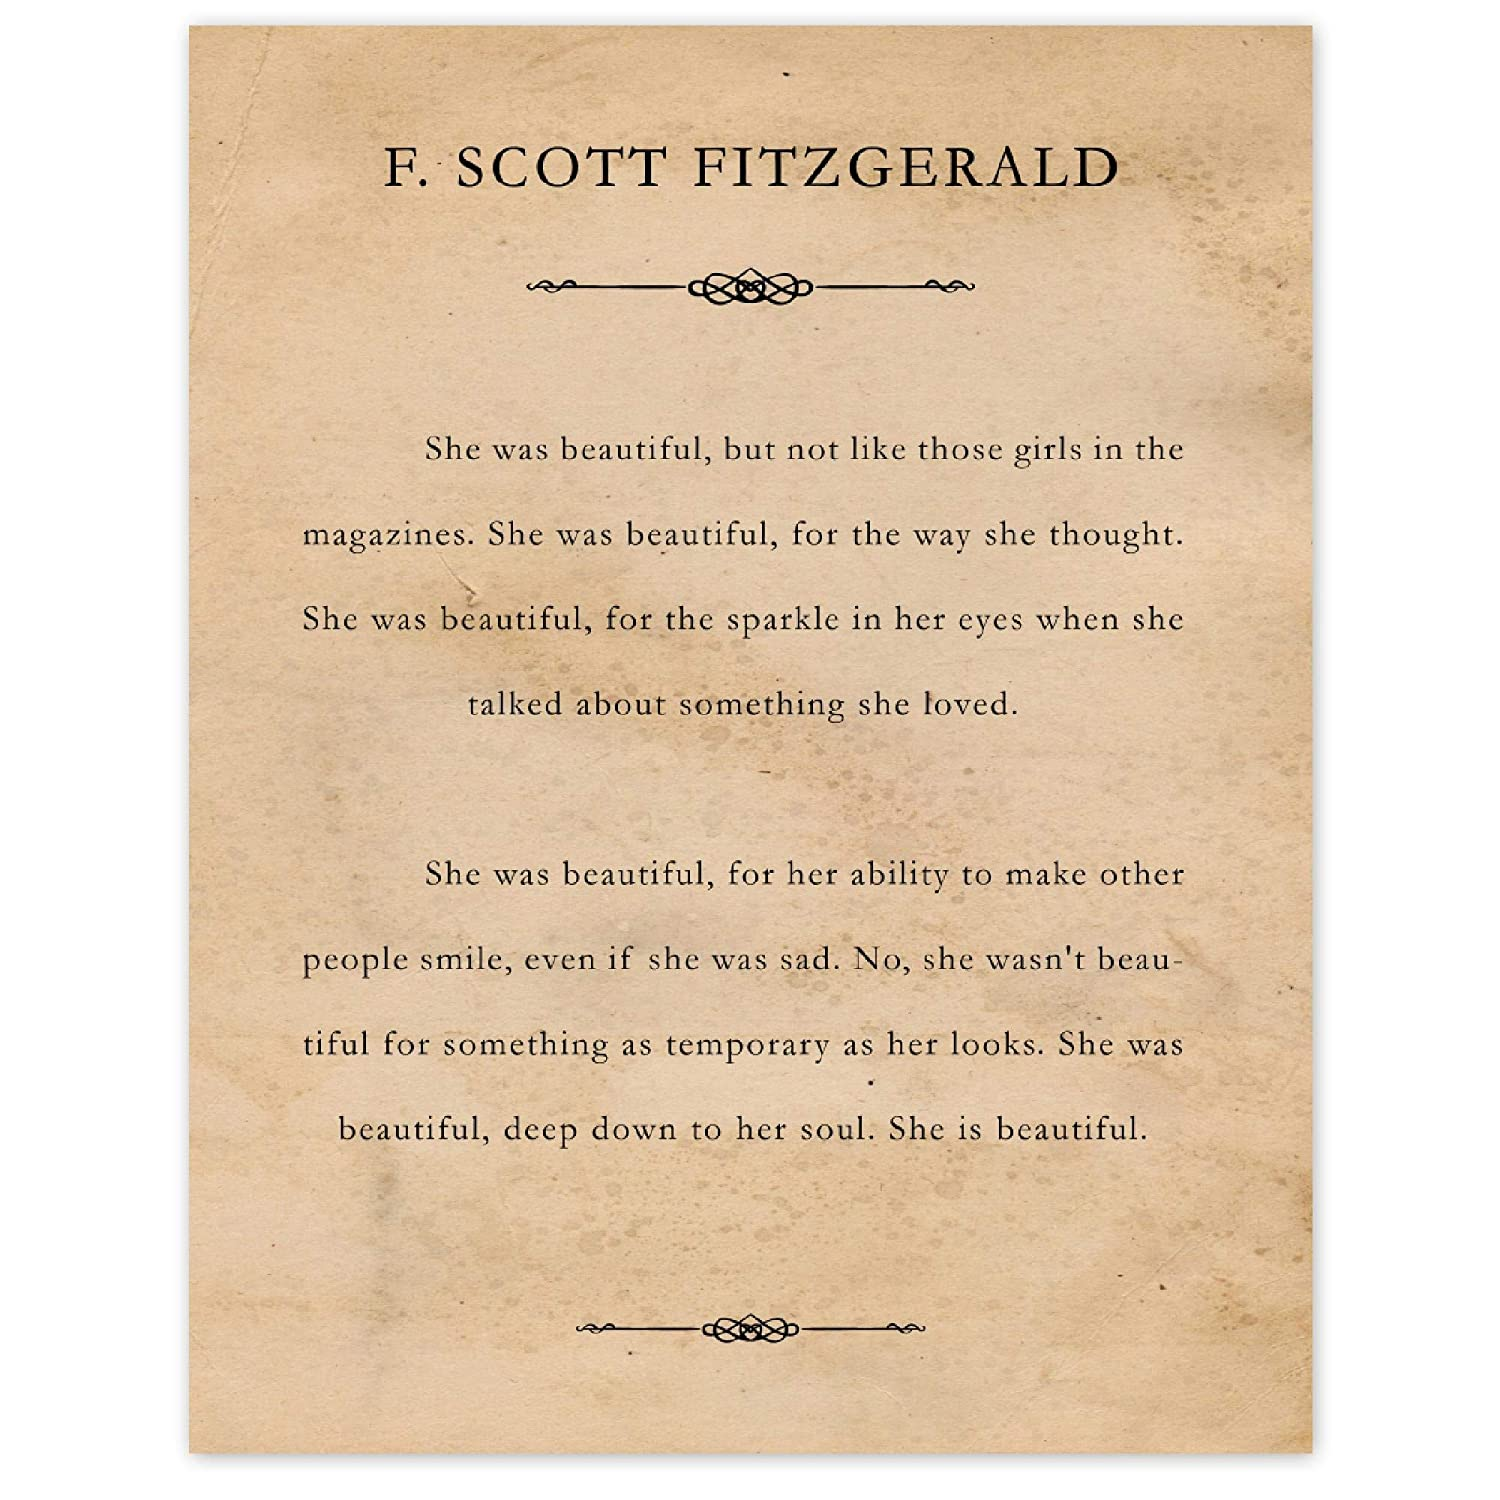 F Scott Fitzgerald She Was Beautiful 11x14 Unframed Typography Book Page Poster Print, Great Wall Art Book Quotes Decor Gifts Under 15 for Home, Office, Garage, Library, Student, Teacher, Fan